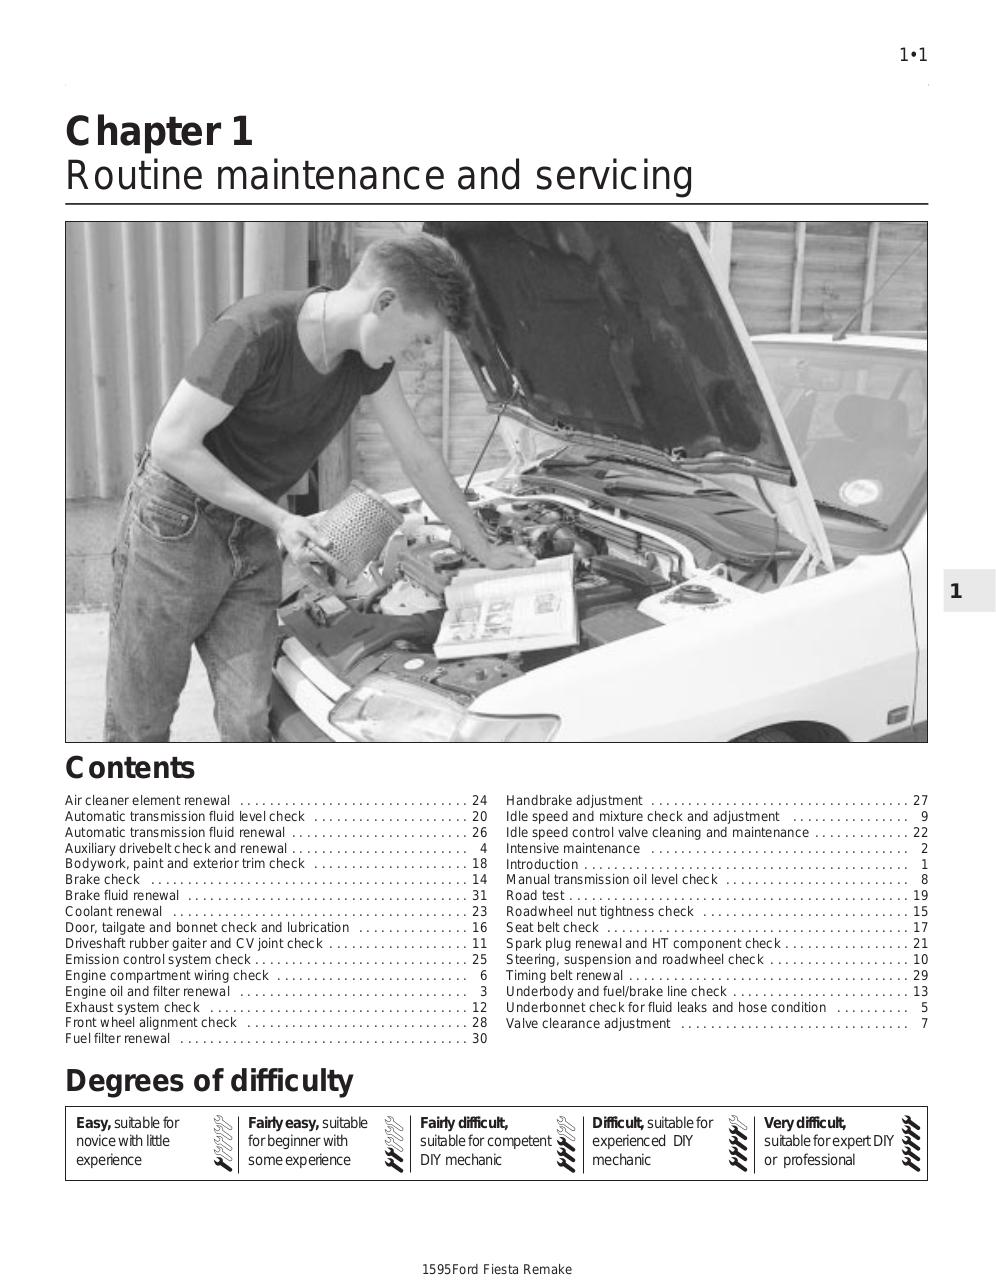 haynes repair manuals pdf